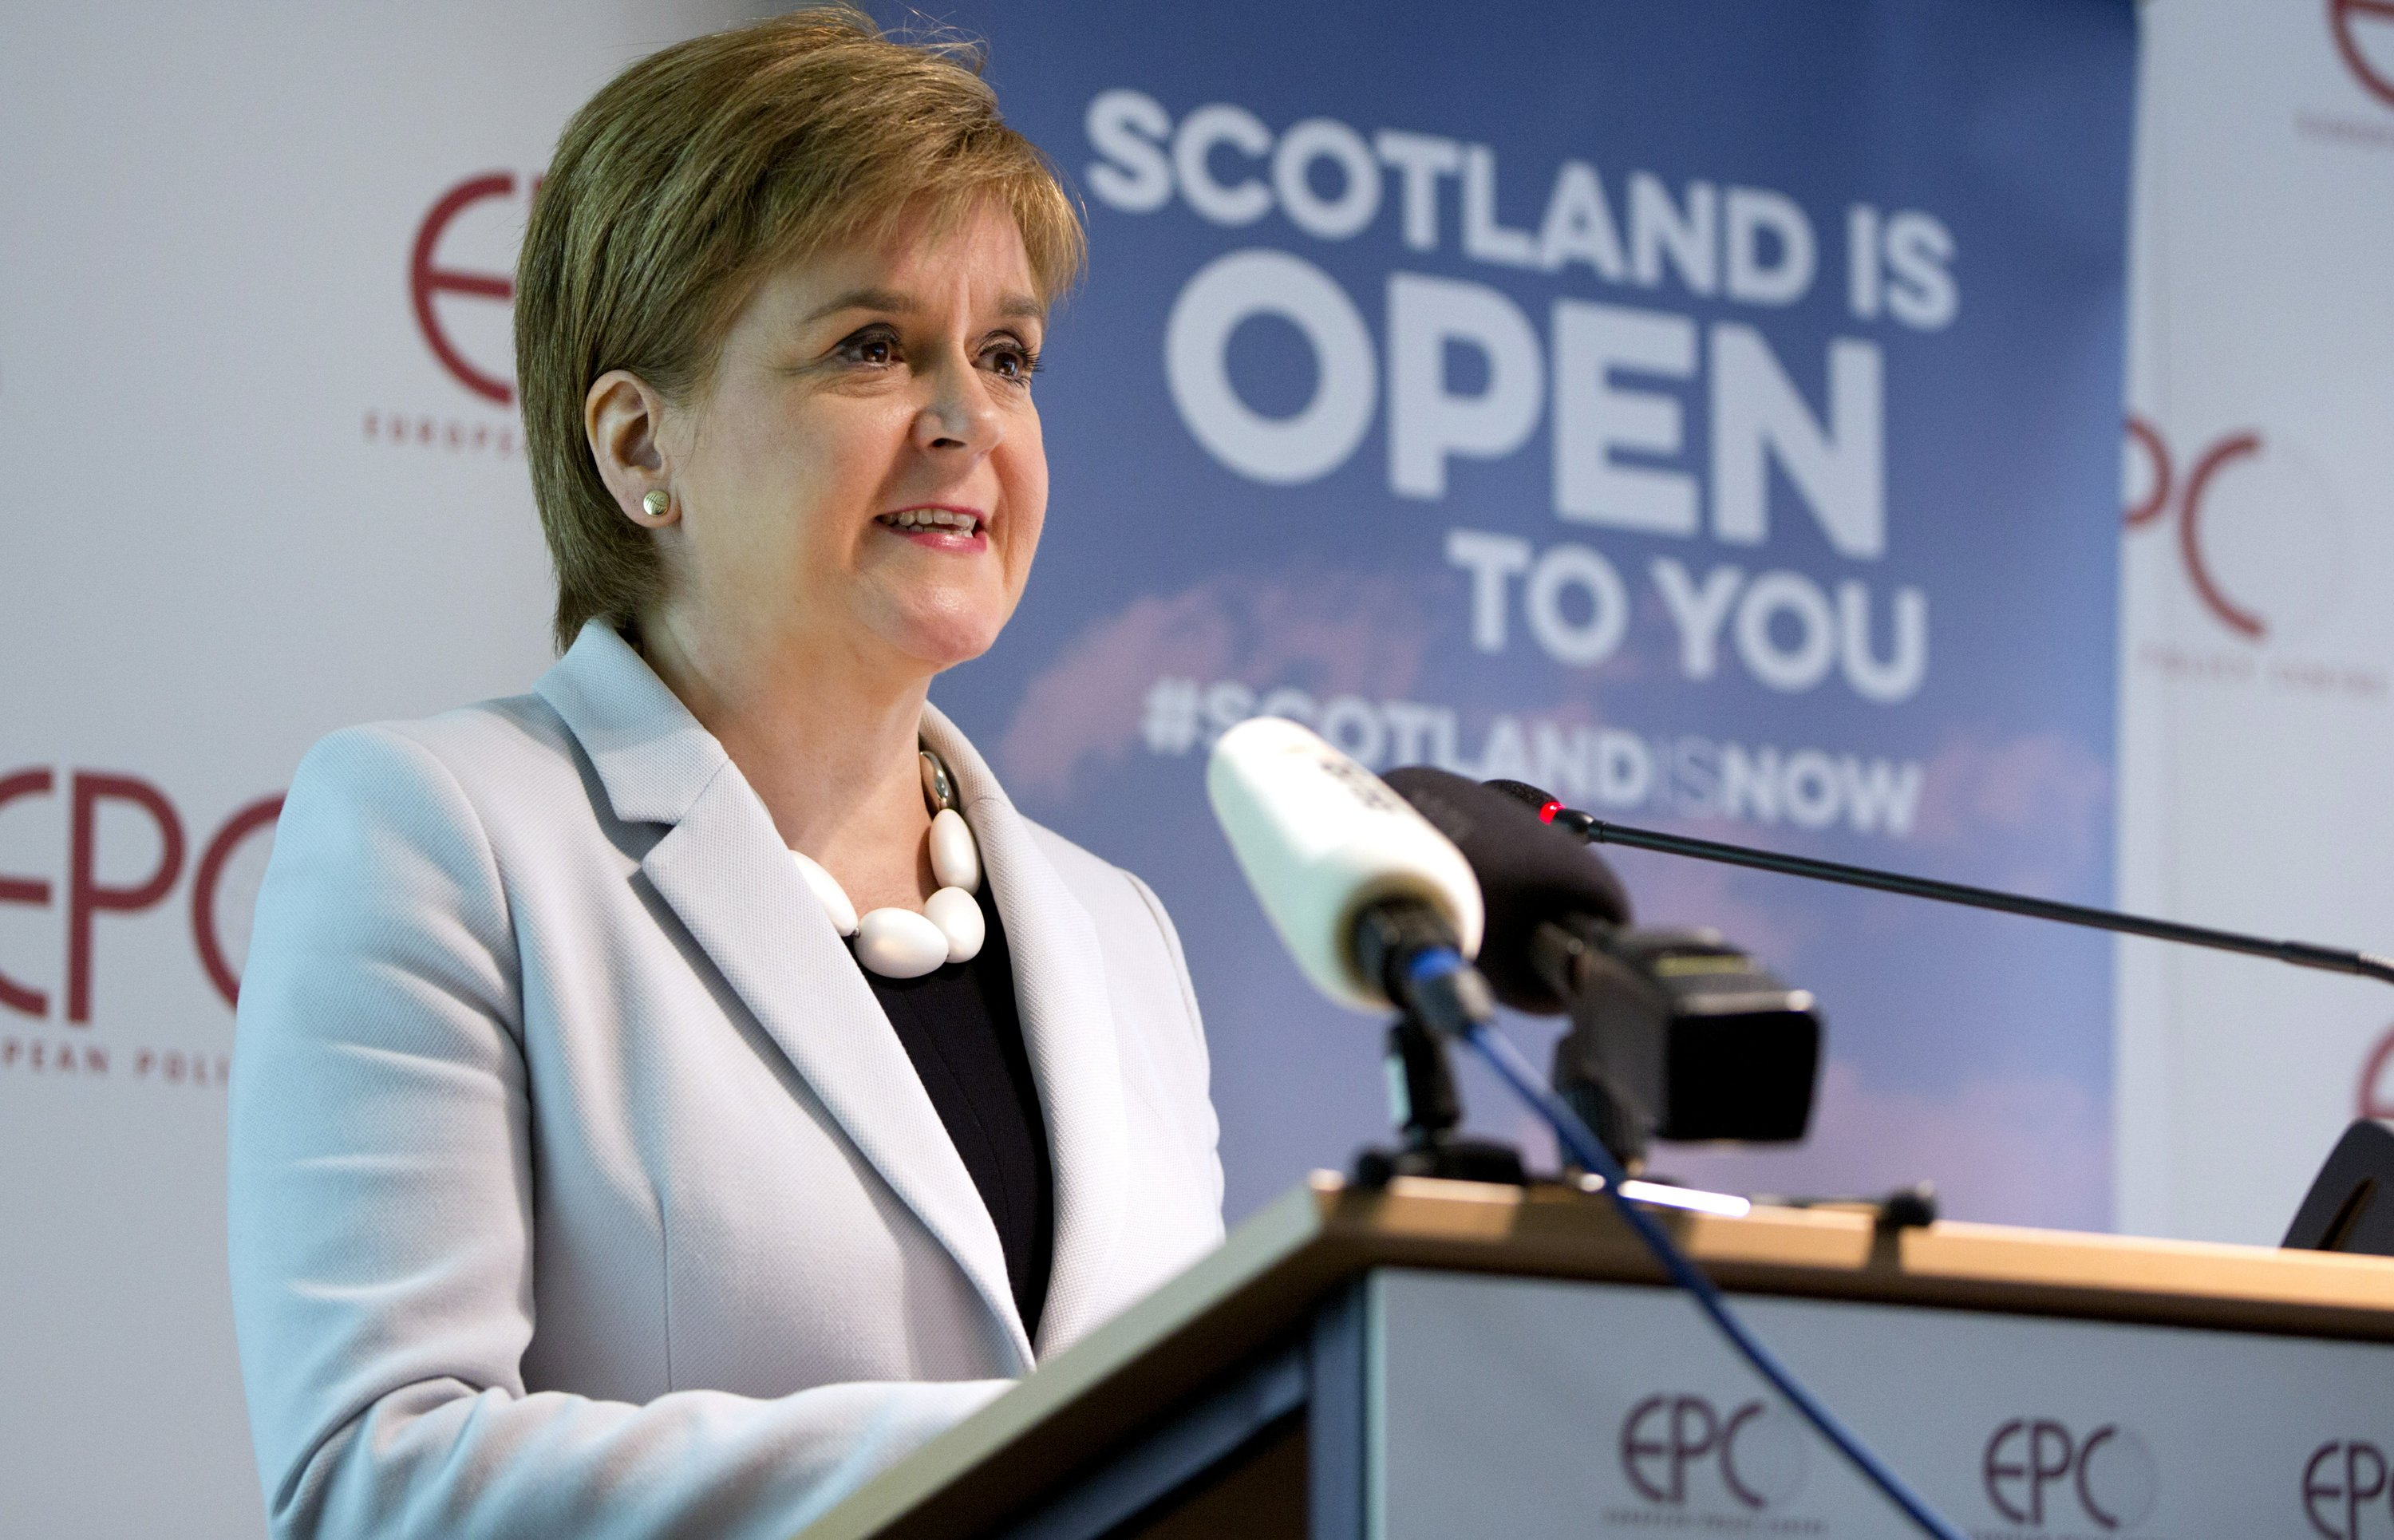 Scottish leader: Brexit signals need to chart future path